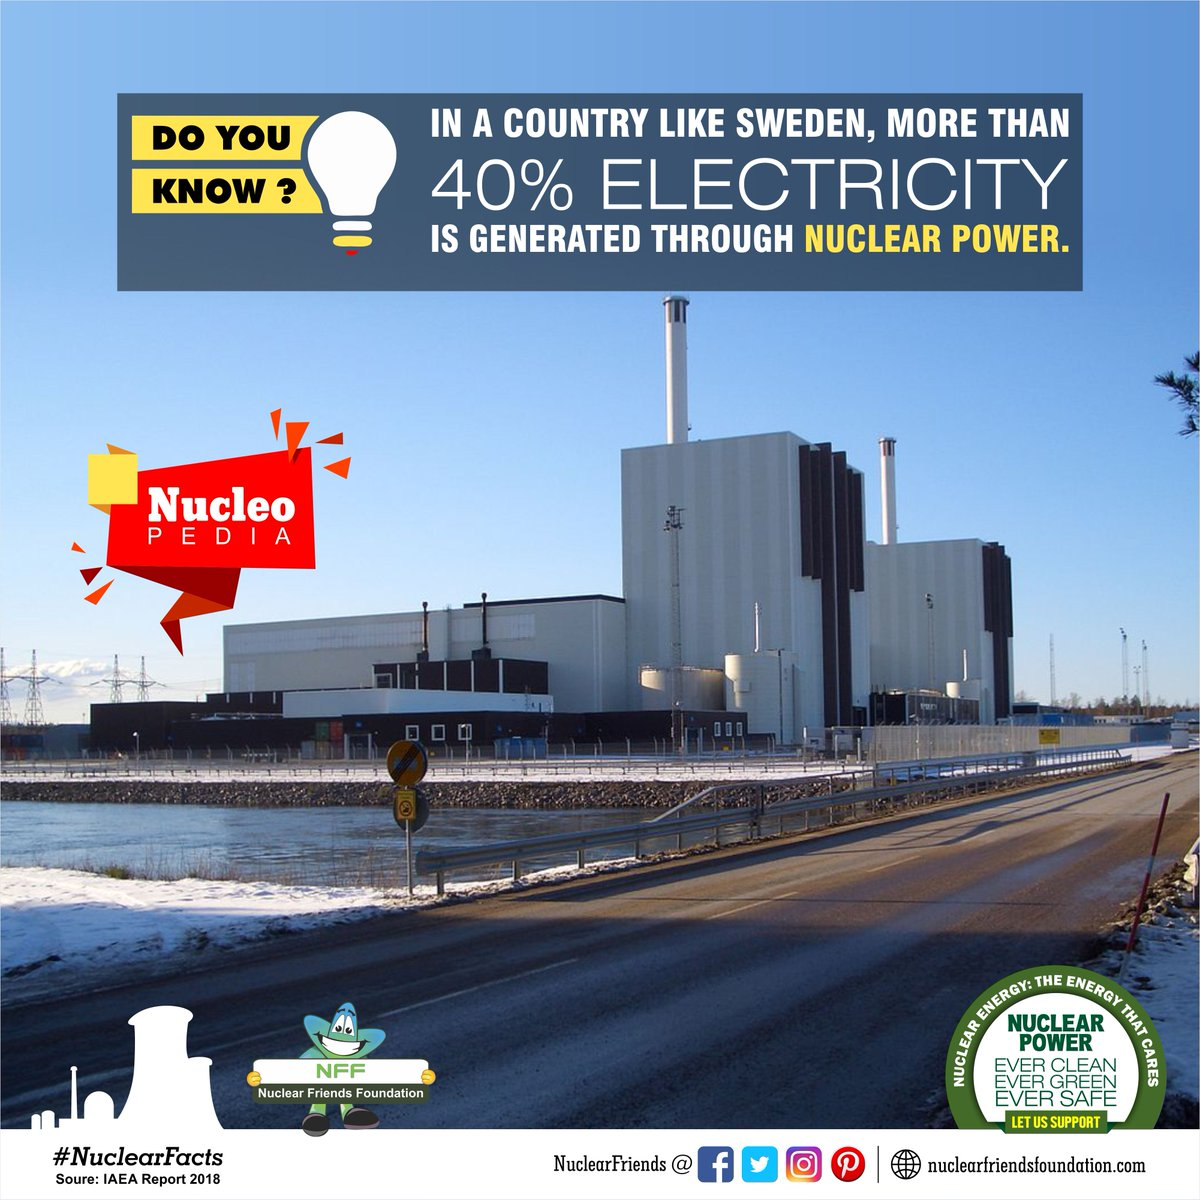 #DoYouKnow In a country like Sweden, more than 40% electricity is generated through Nuclear Power  Reach us @ http://nuclearfriendsfoundation.com  #NuclearPower #NuclearEnergy #Evergreen  #NuclearFacts  #WednesdayWisdom